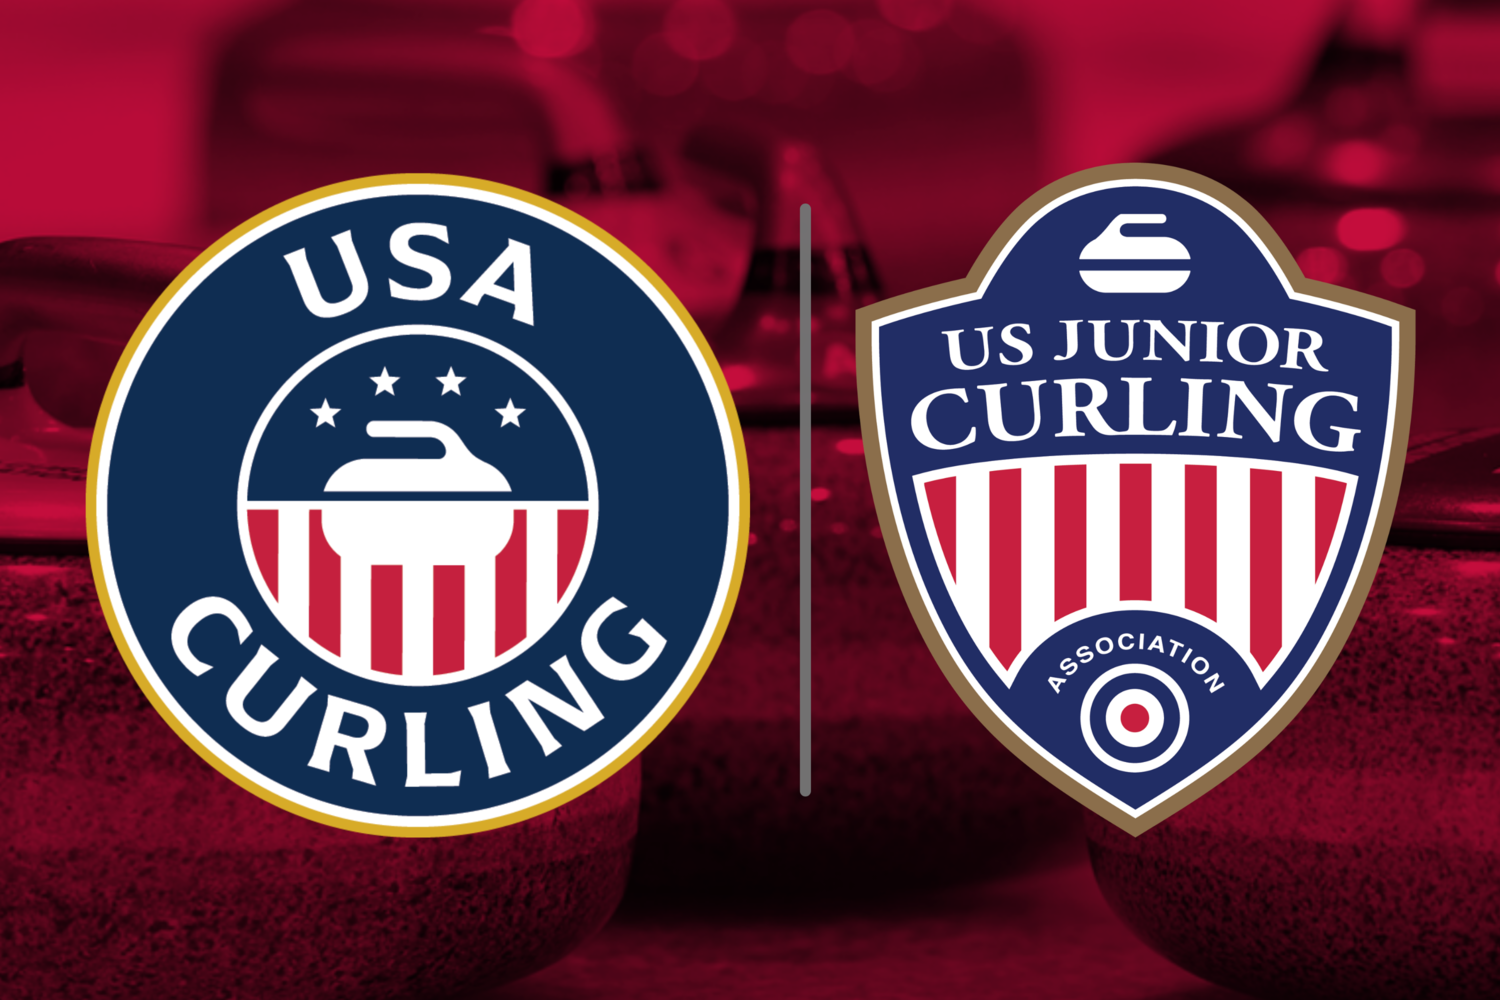 USA CURLING PARTNERS WITH U.S. JUNIOR CURLING ASSOCIATION TO HOST JUNIOR CURLING SERIES — USA CURLING